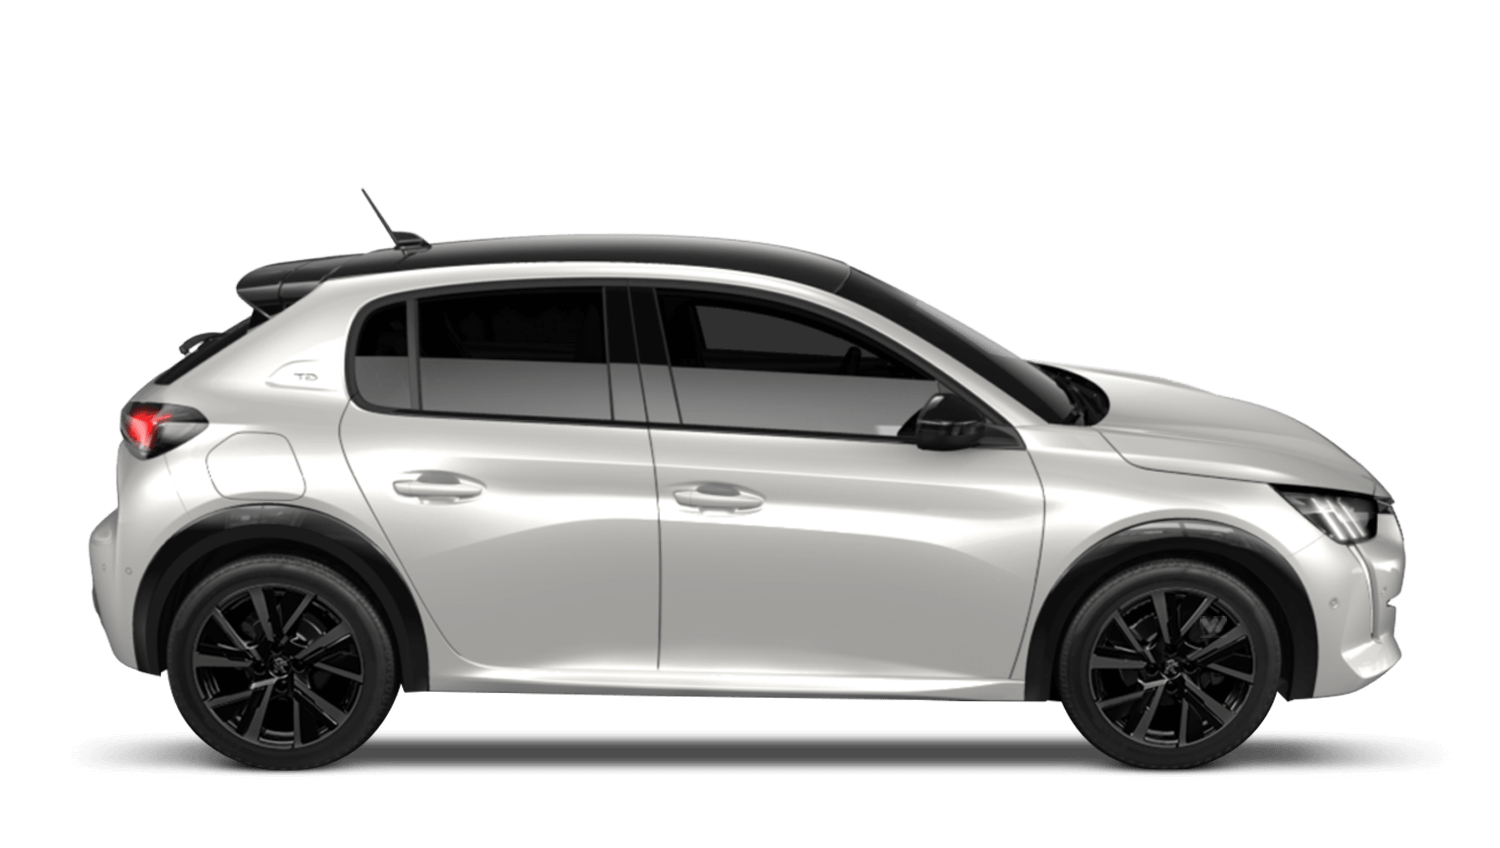 Pearlescent White Peugeot 208